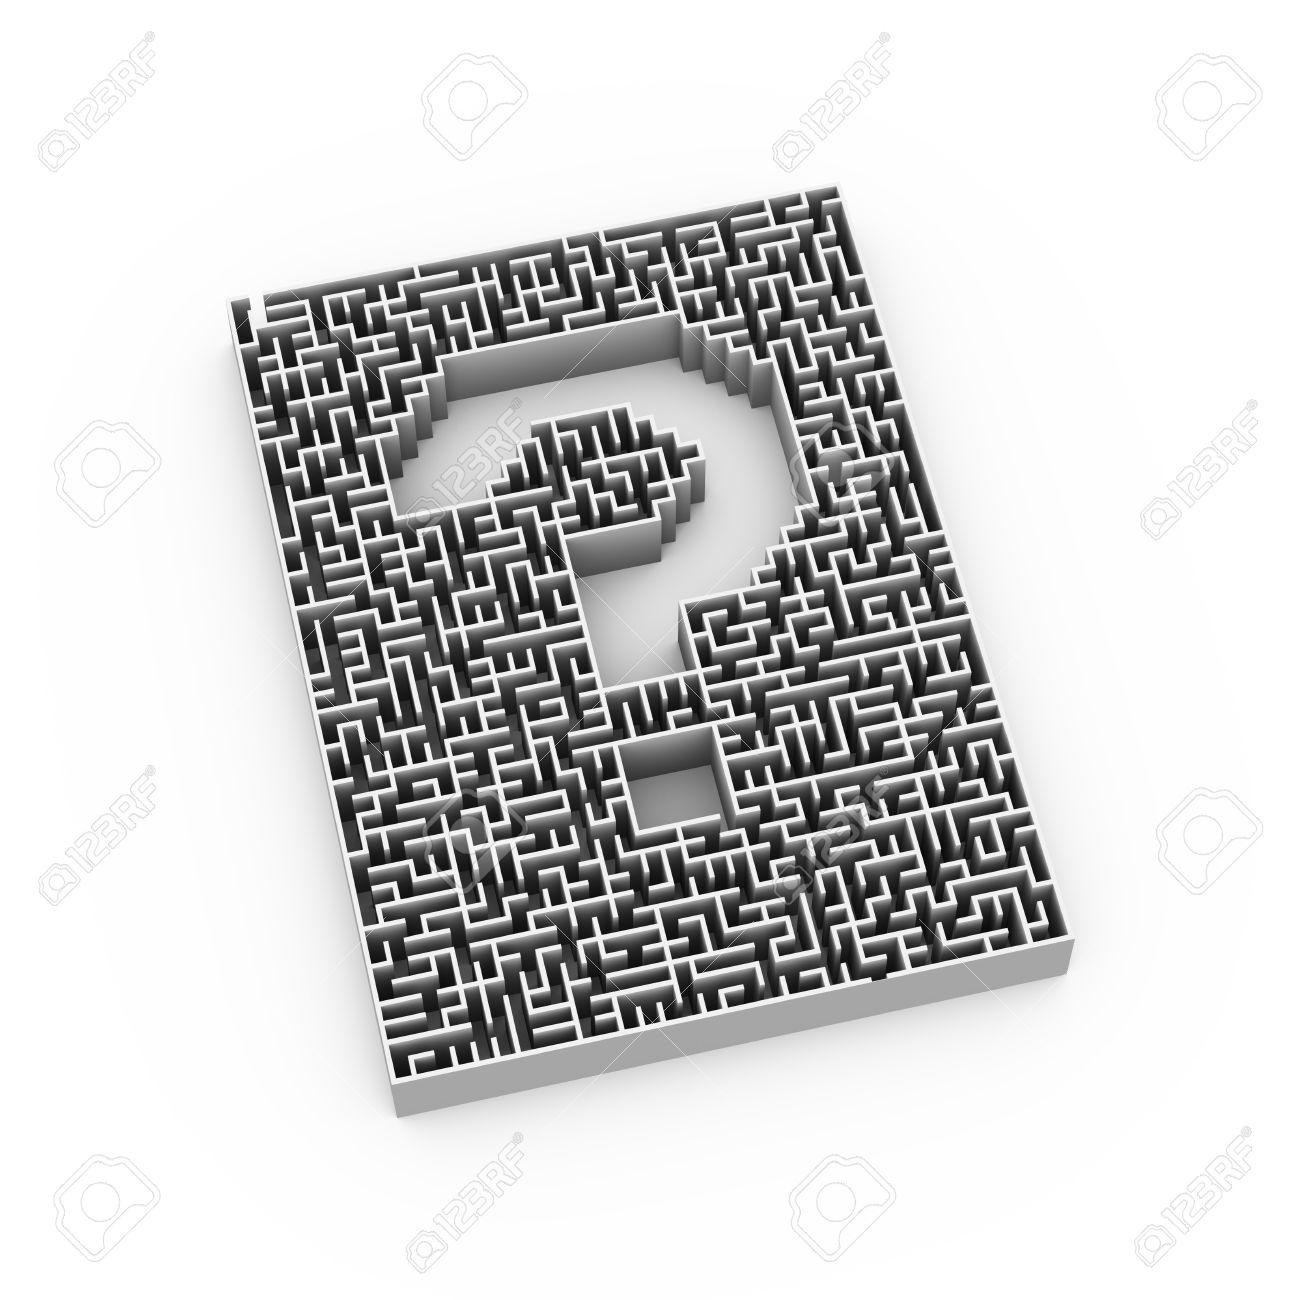 3d Illustration Of Complicated Question Mark Symbol Sign Maze